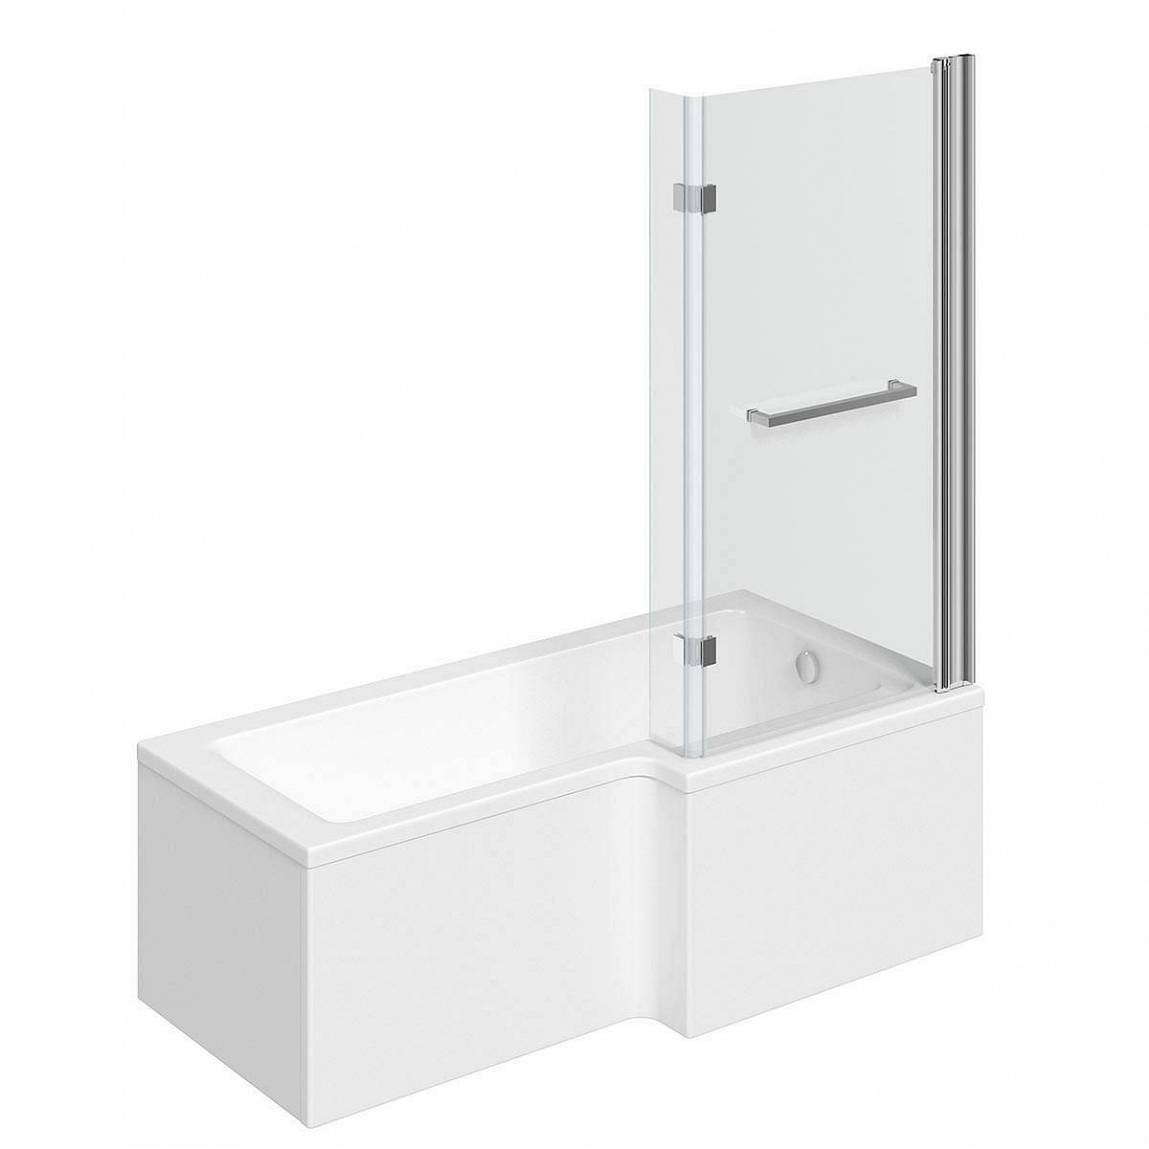 Image of Boston Shower Bath 1700 x 850 RH inc. 8mm Hinged Screen with Towel Rail